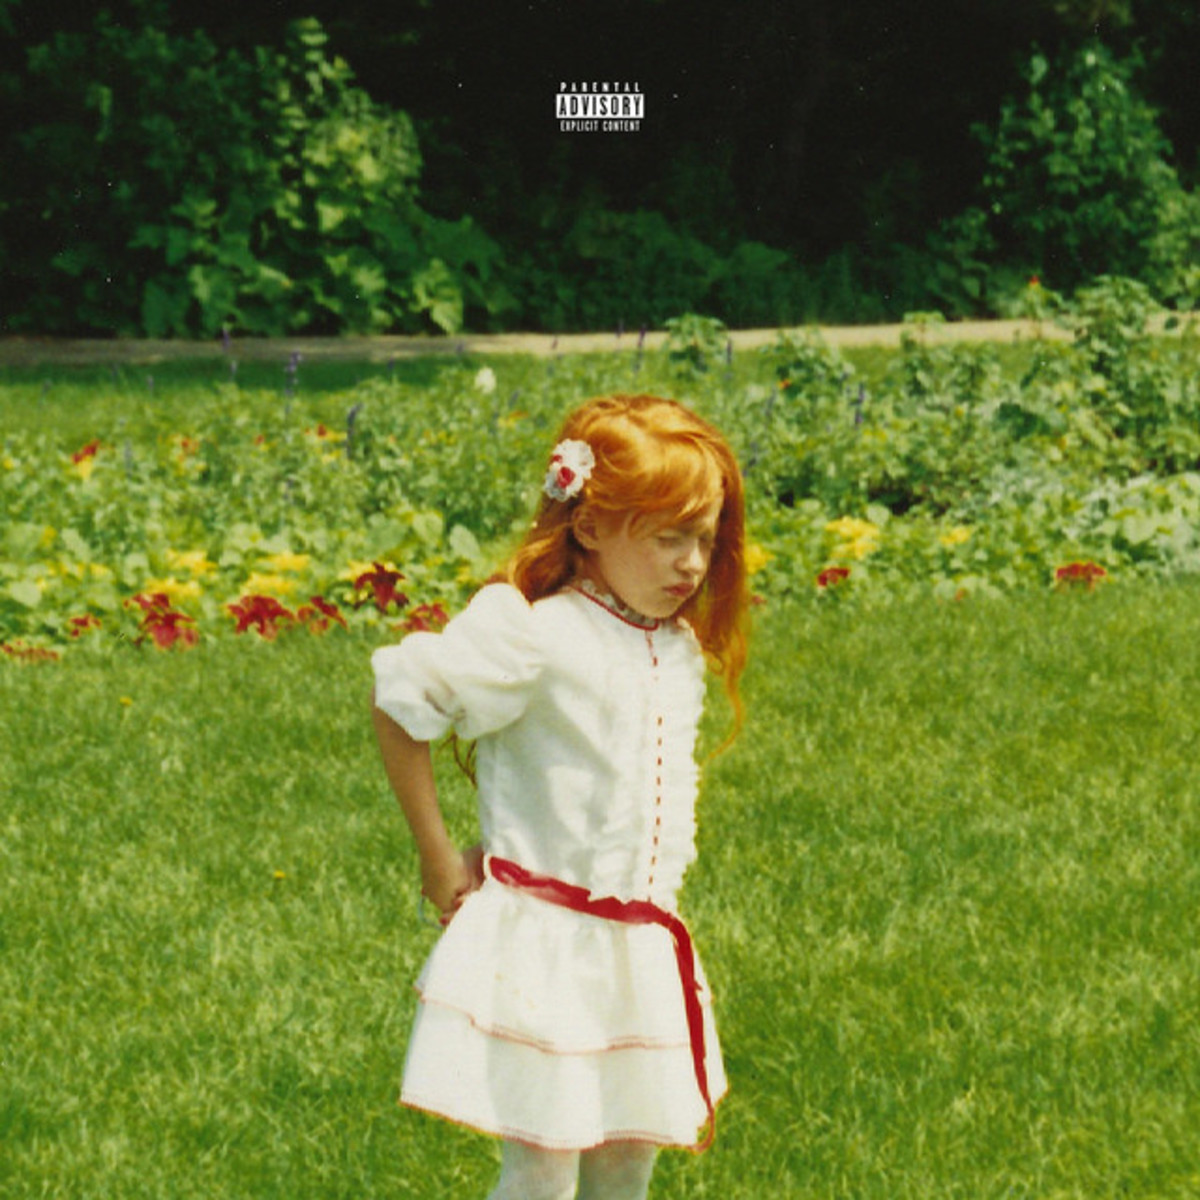 Rejjie Snow Dear Annie Best Albums of 2018